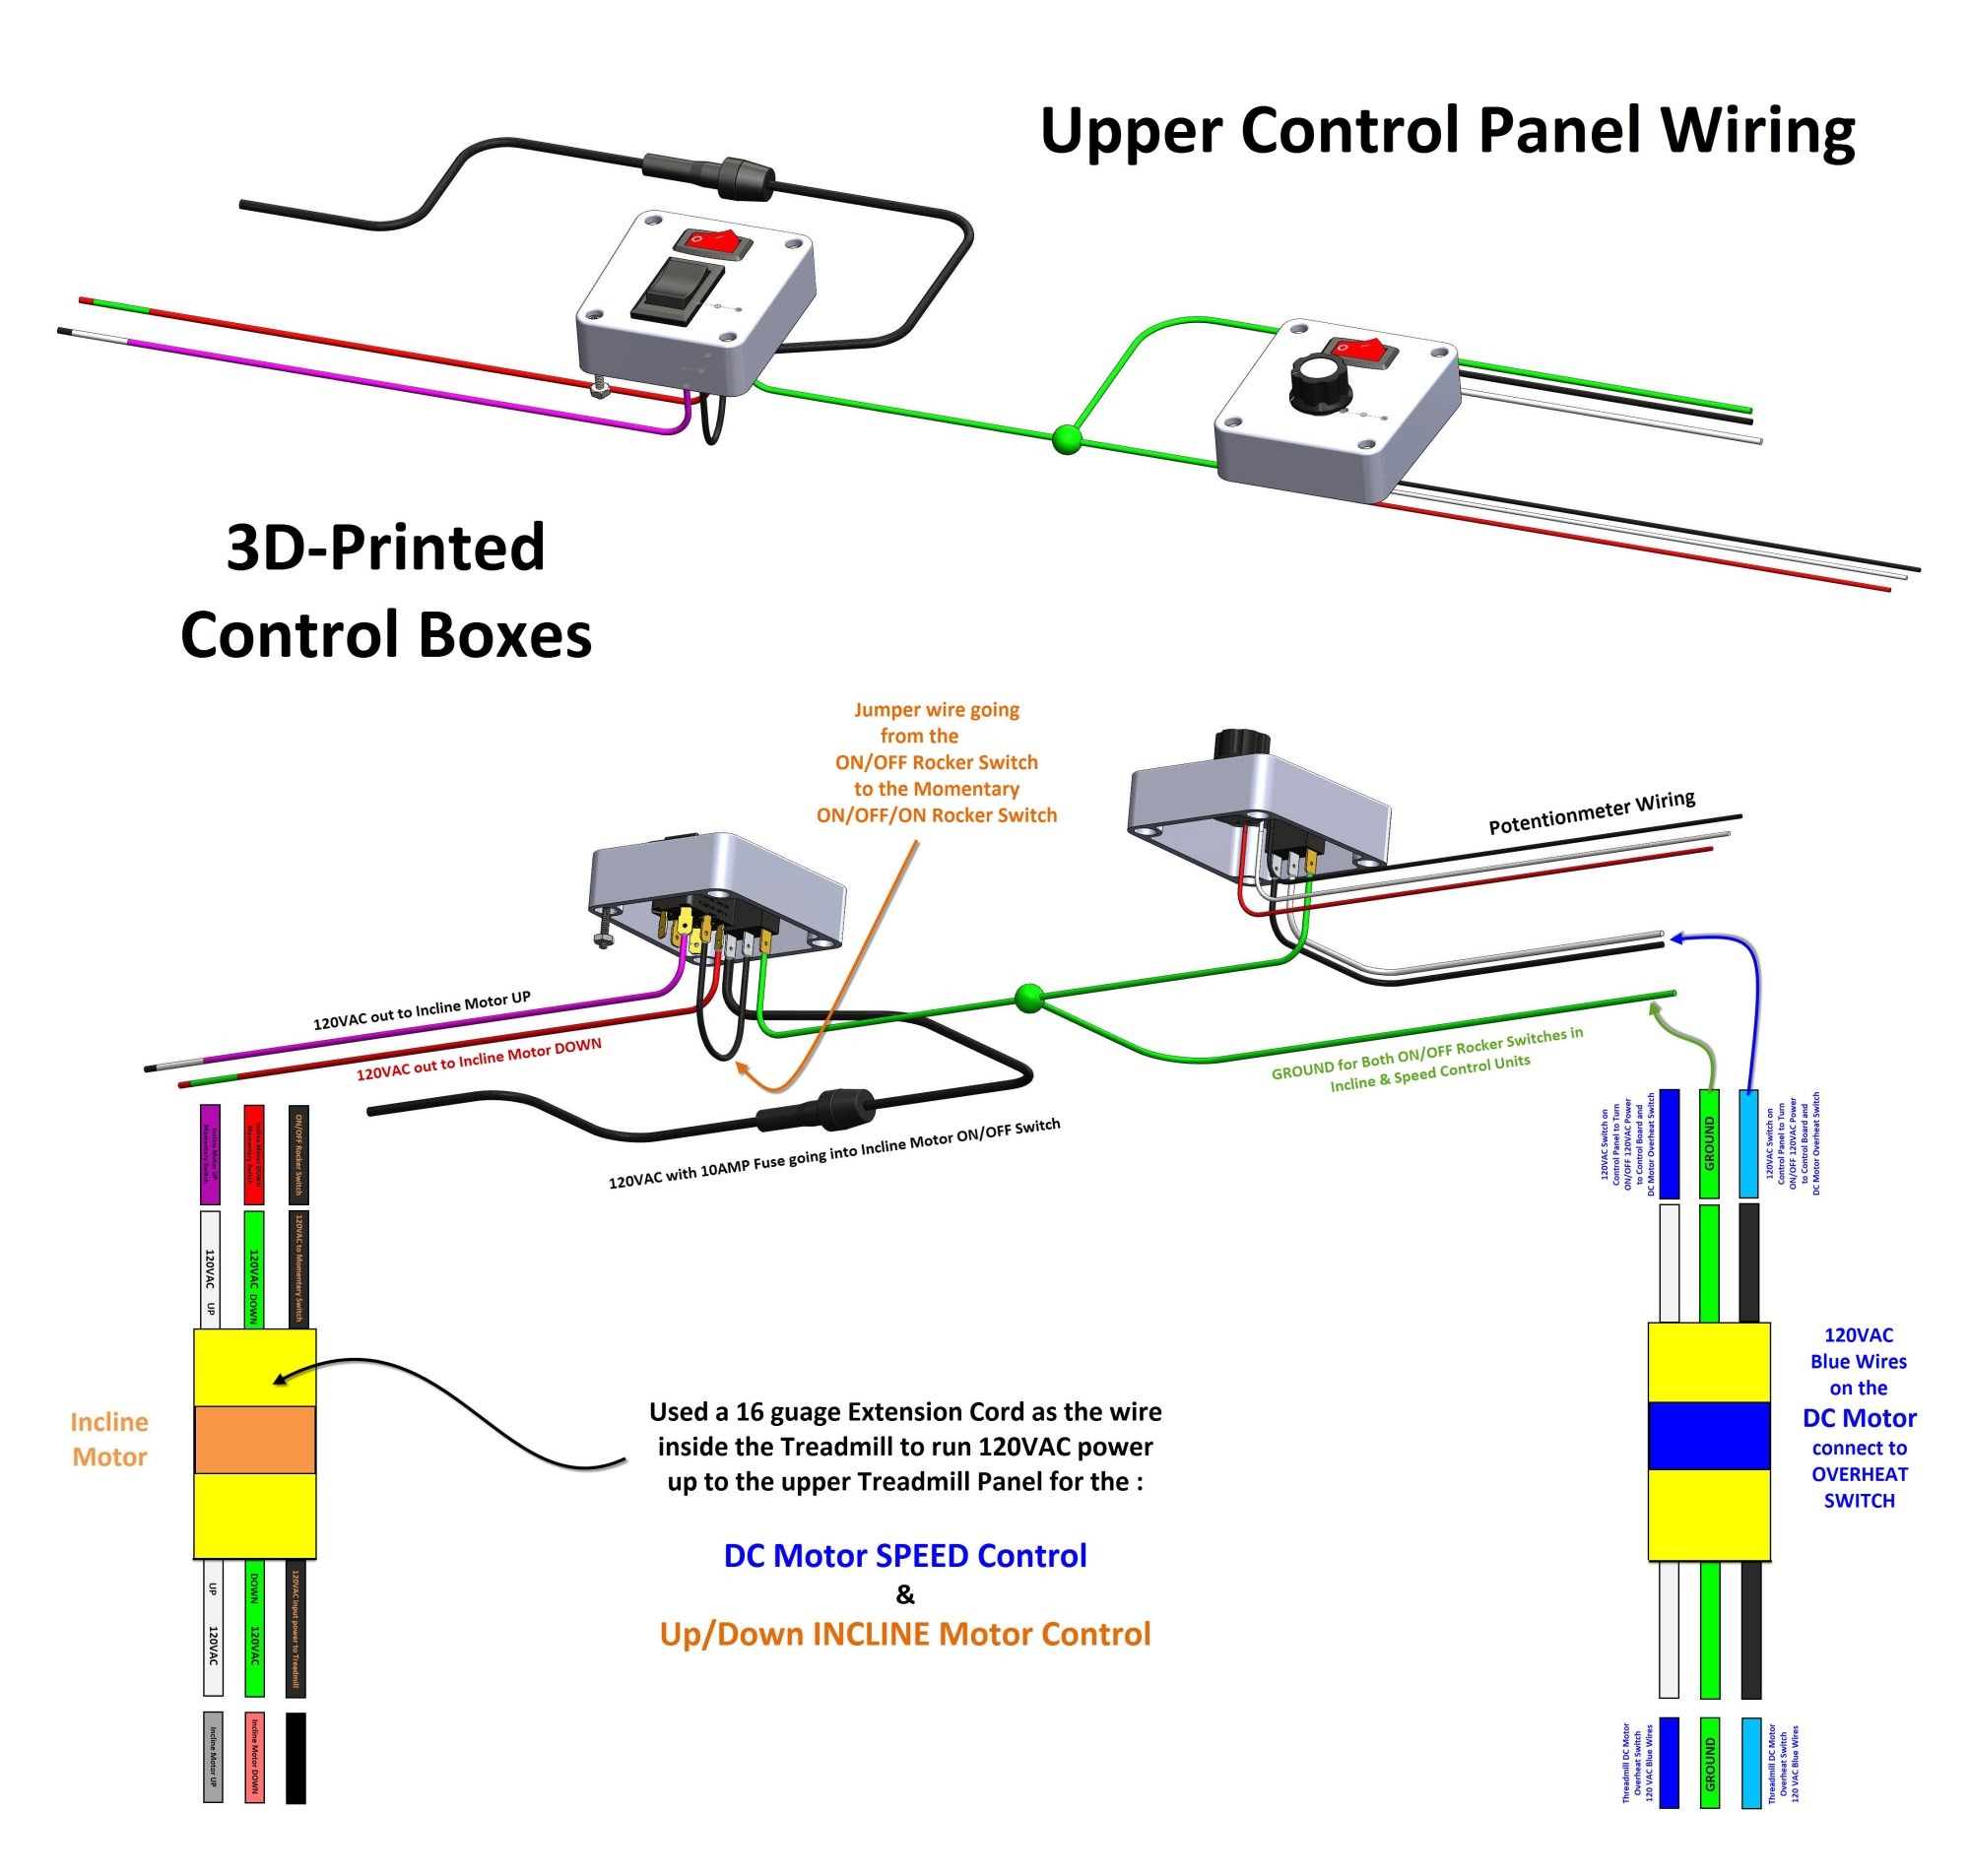 hight resolution of wiring in the 3d printed boxes for treadmill speed incline motor controls